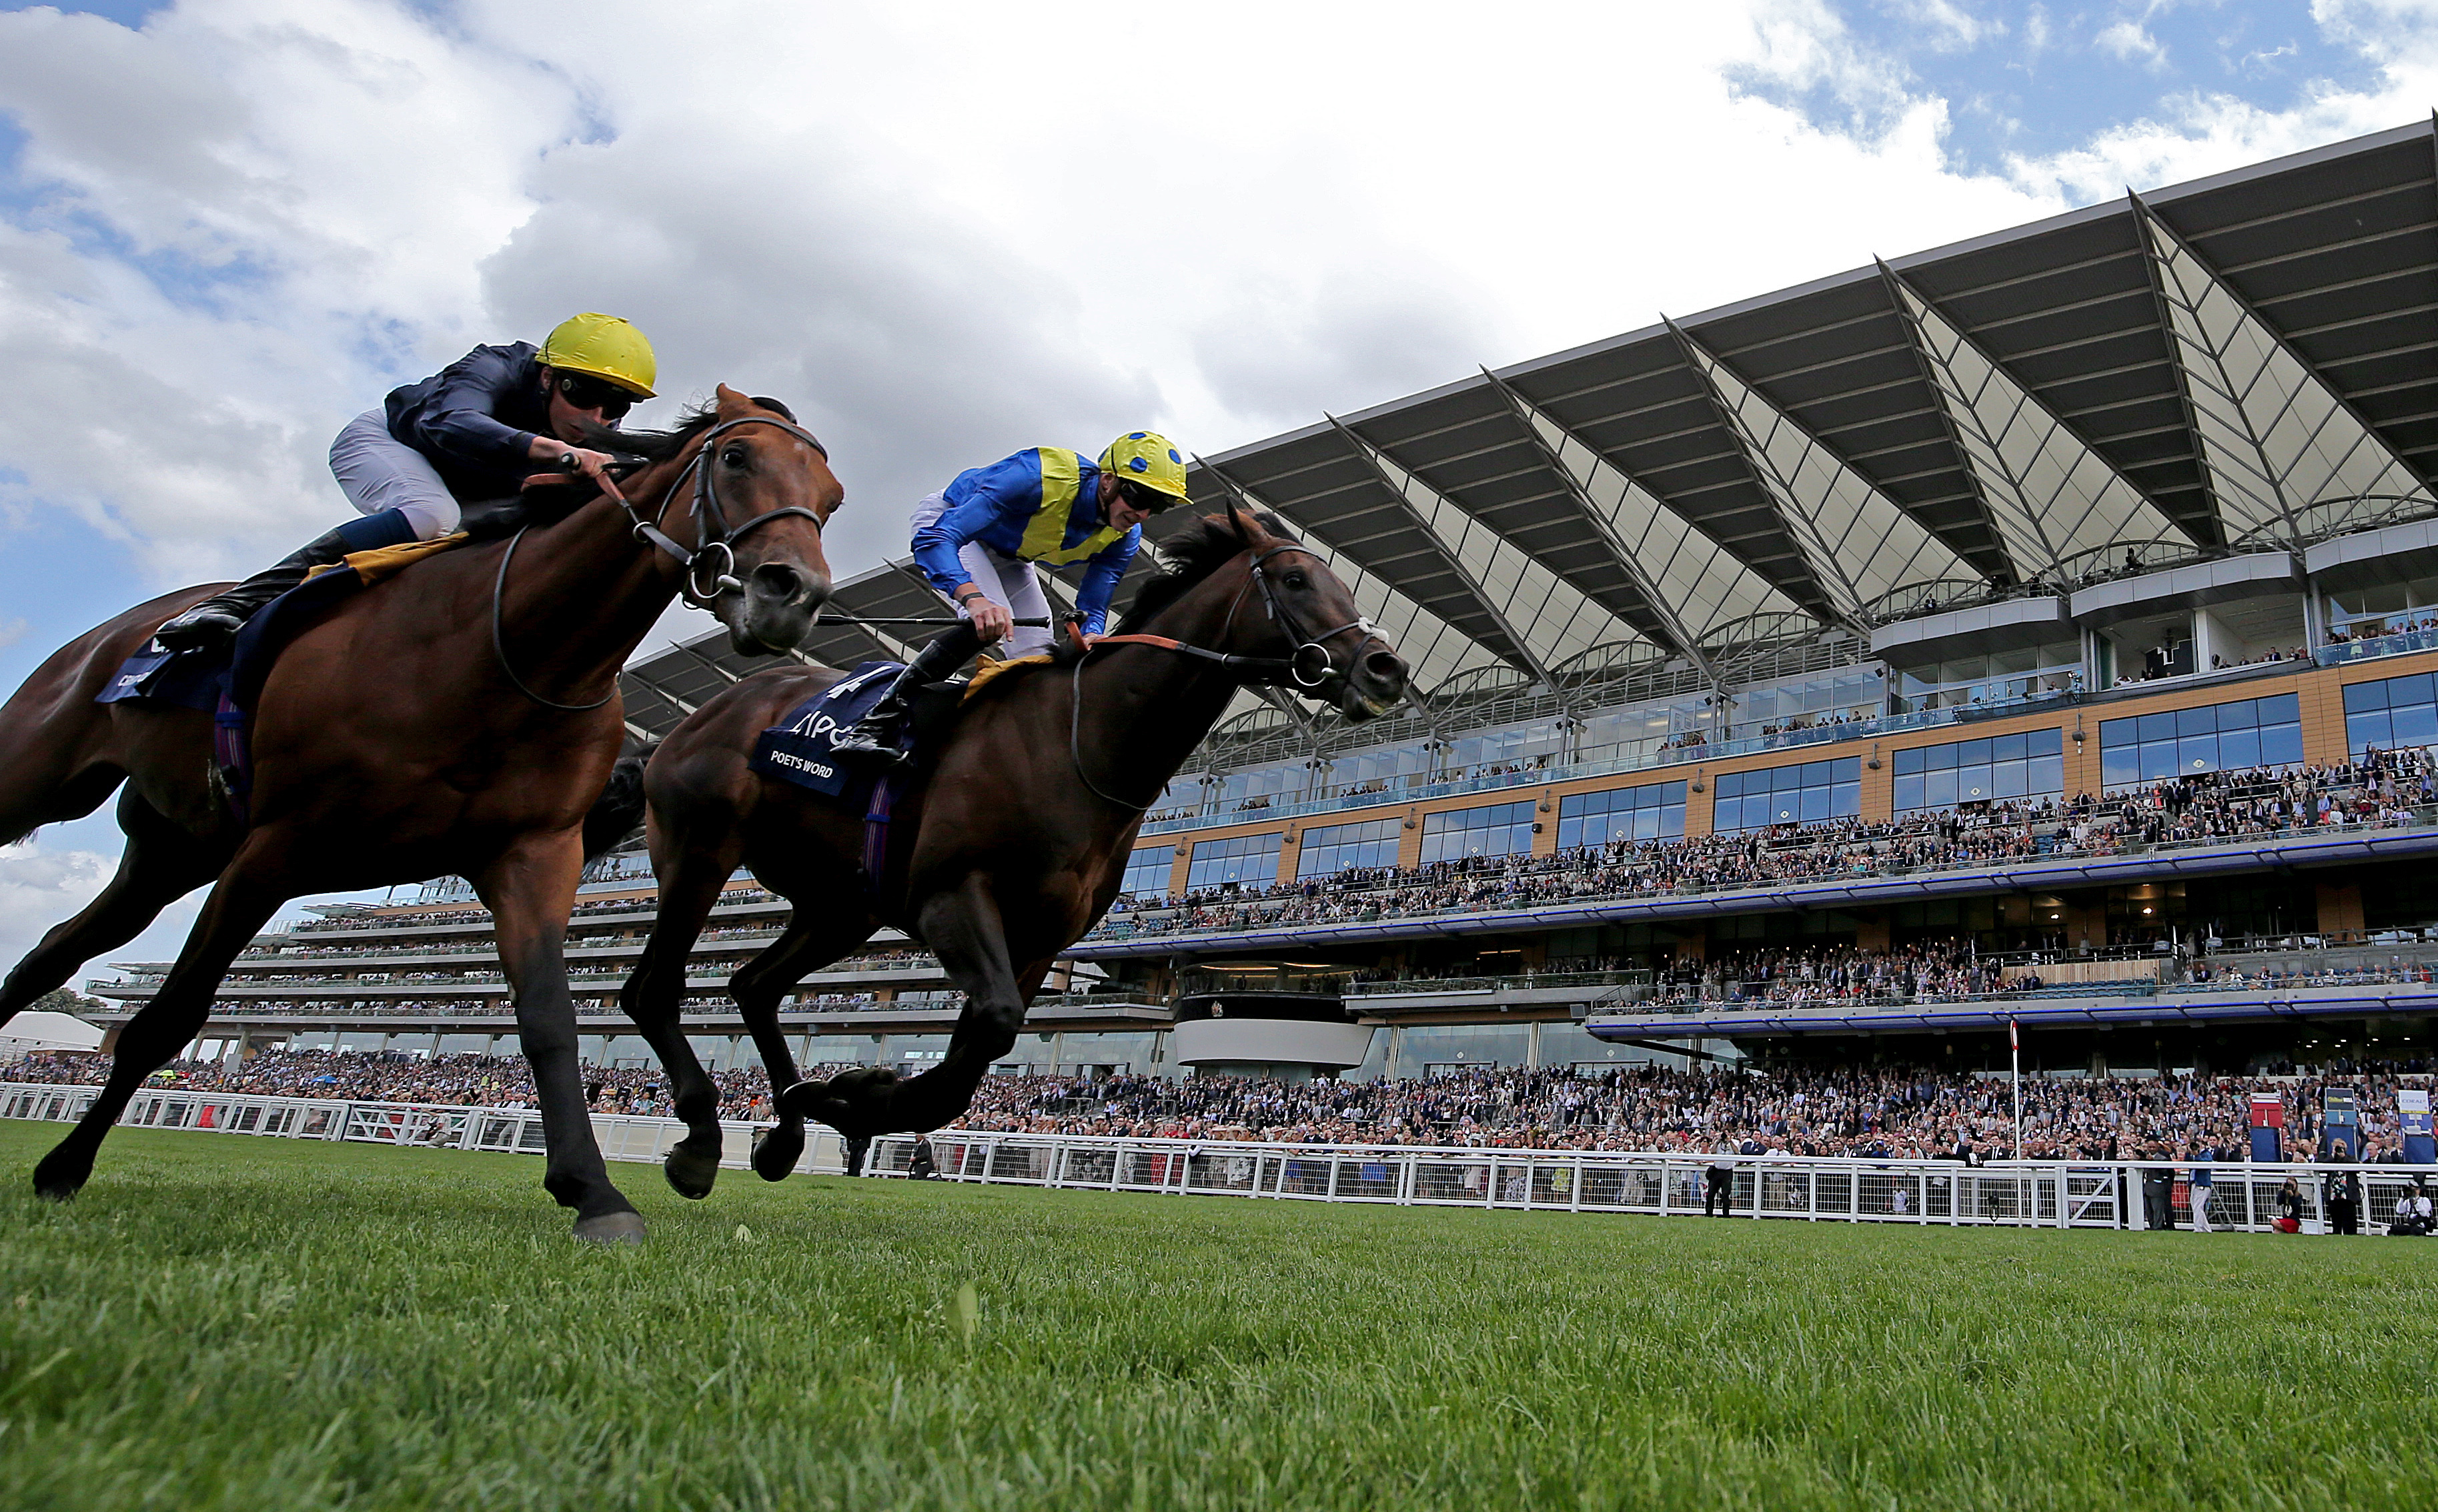 Poet's Word just got the better of Crystal Ocean in the King George